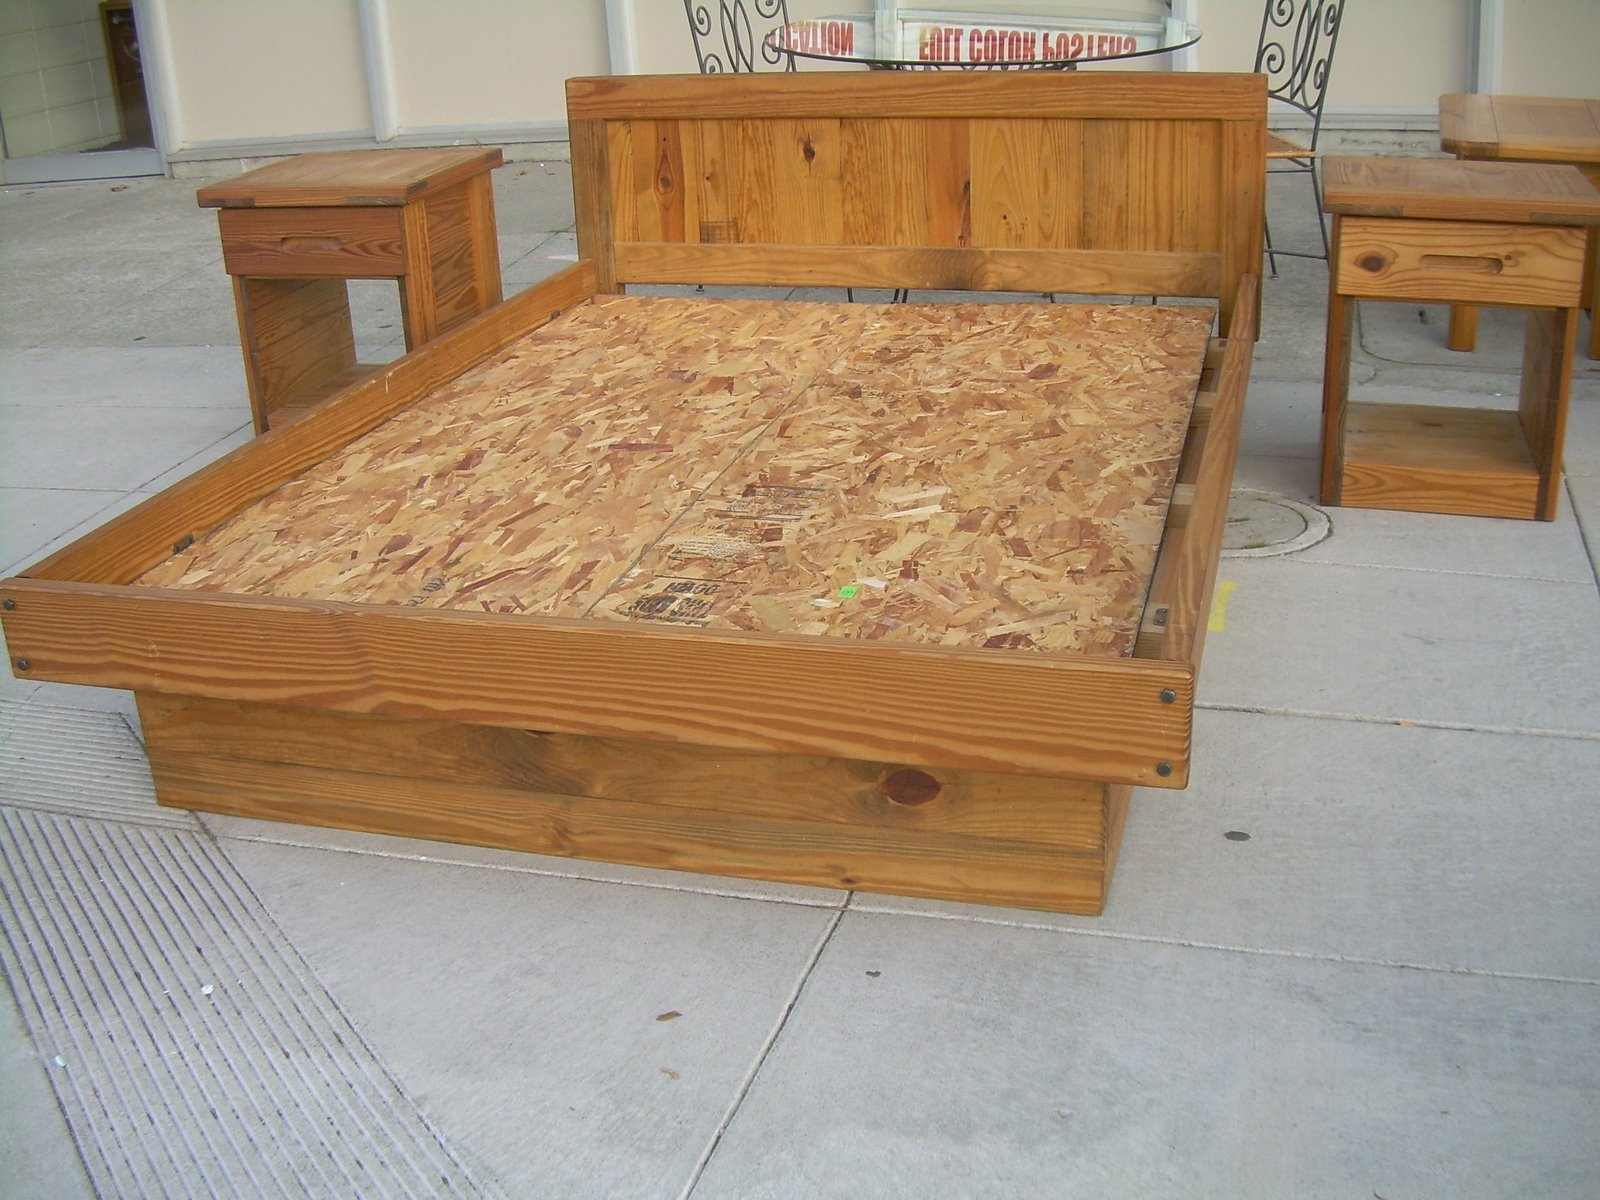 Oak Beds At The Galleria